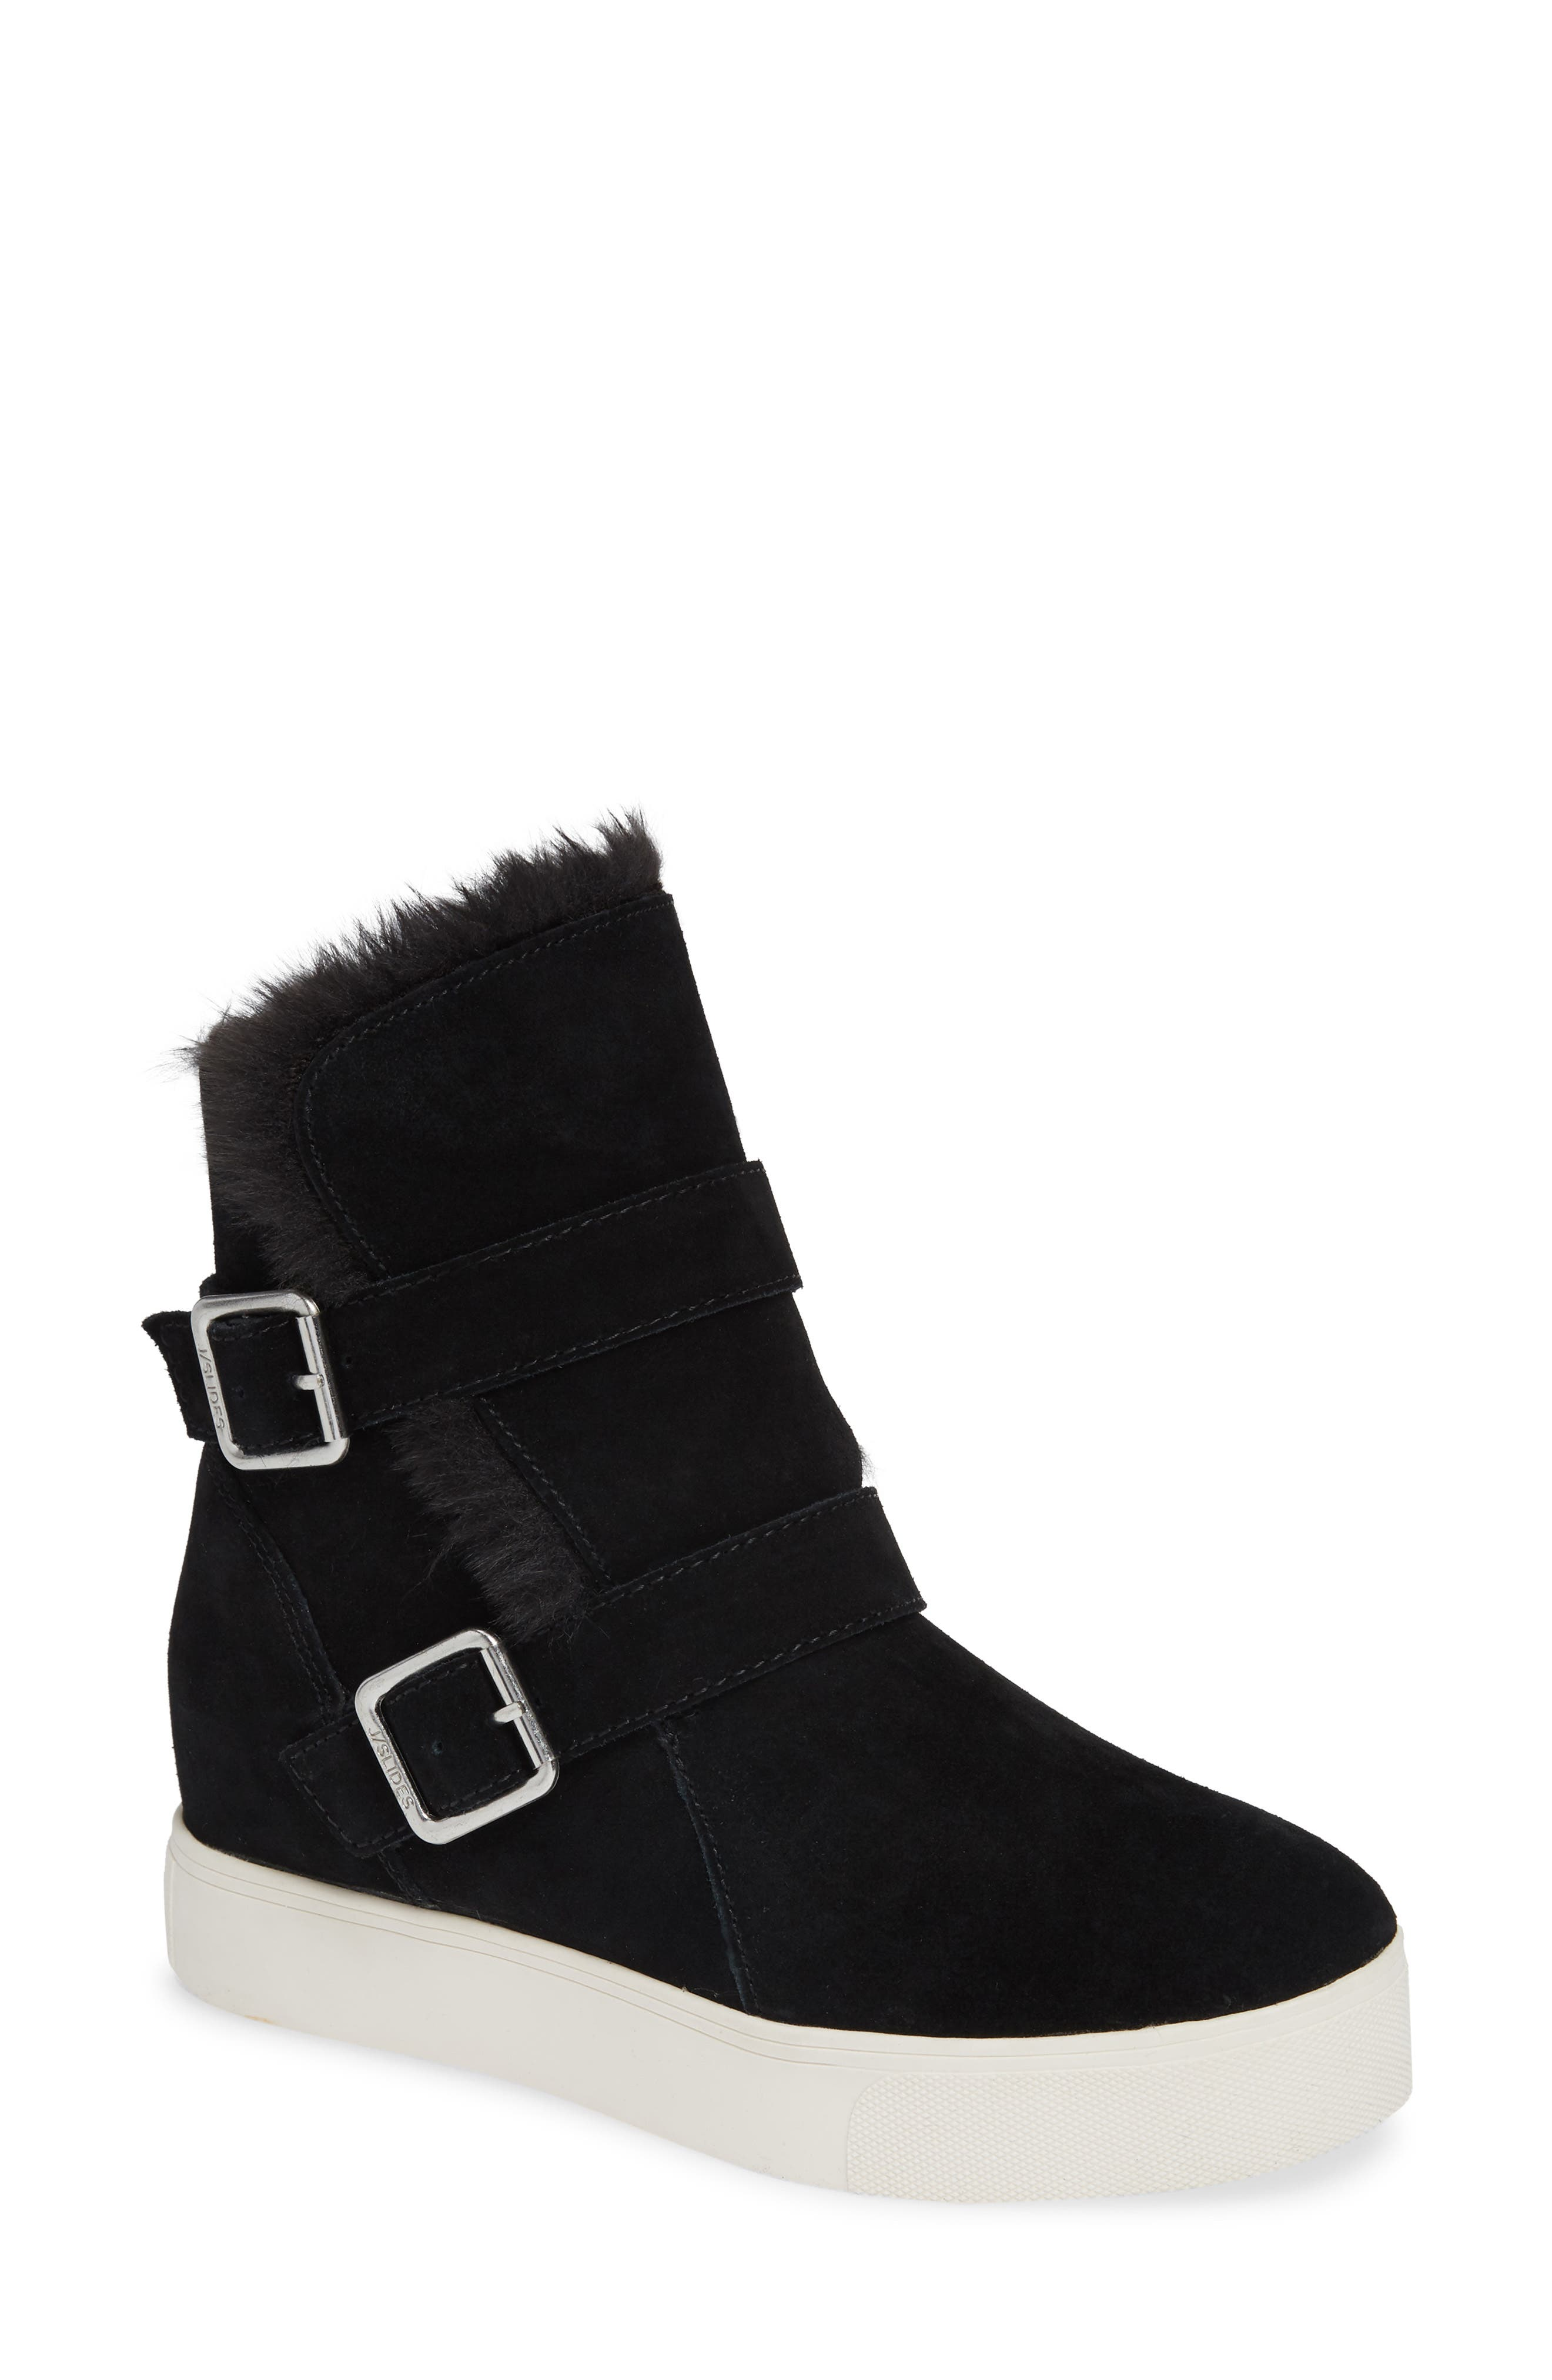 JSLIDES Wells Faux Fur Trim High Top Sneaker in Black Suede